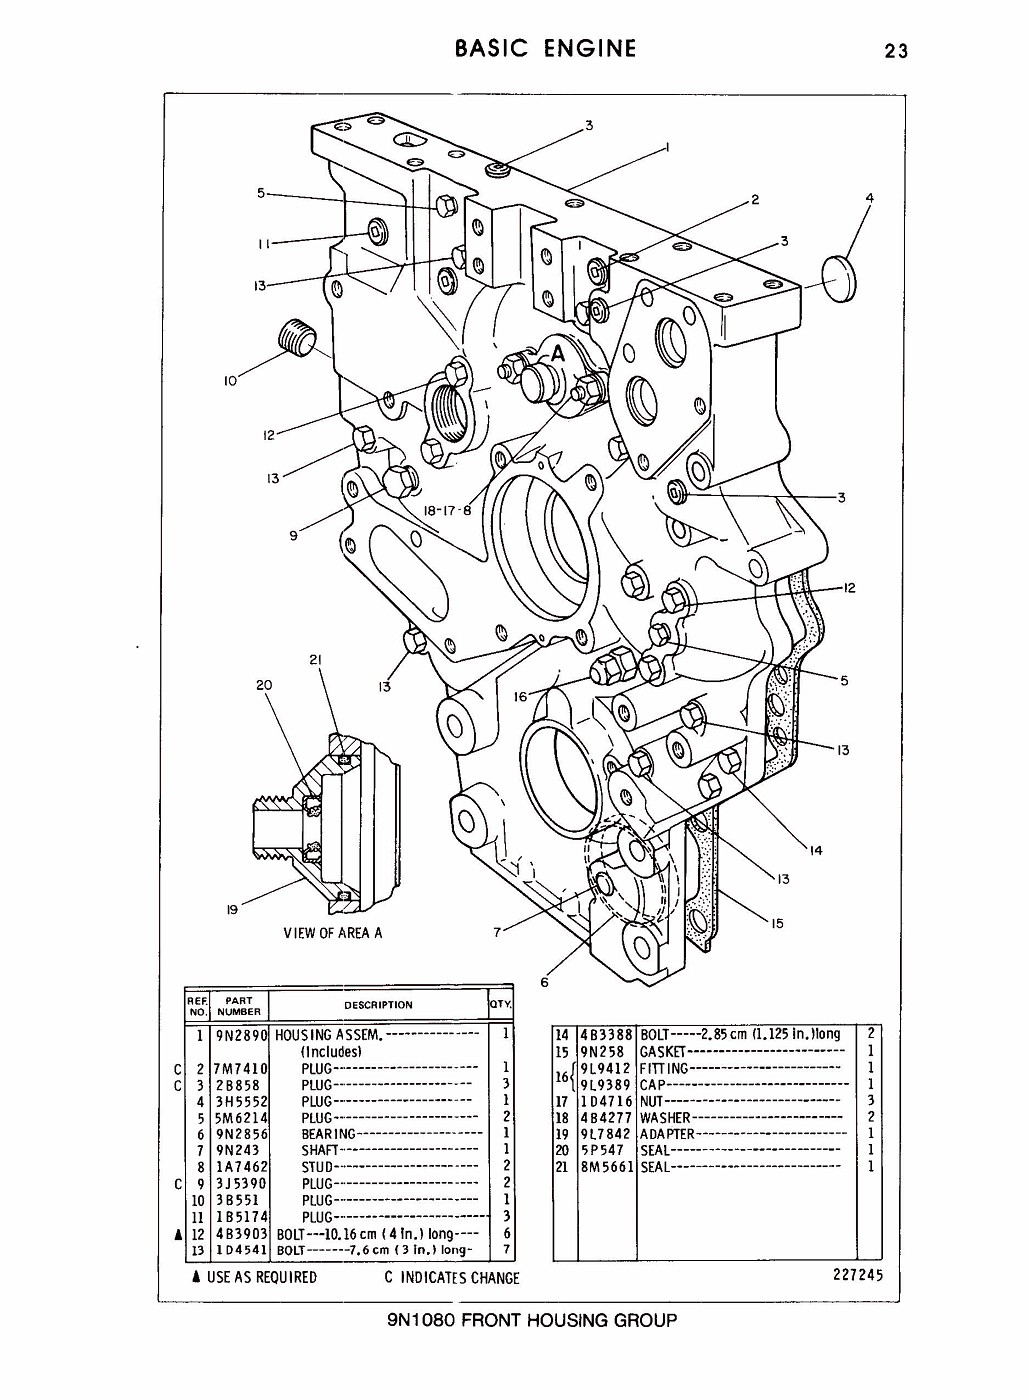 Caterpillar Generator Manual